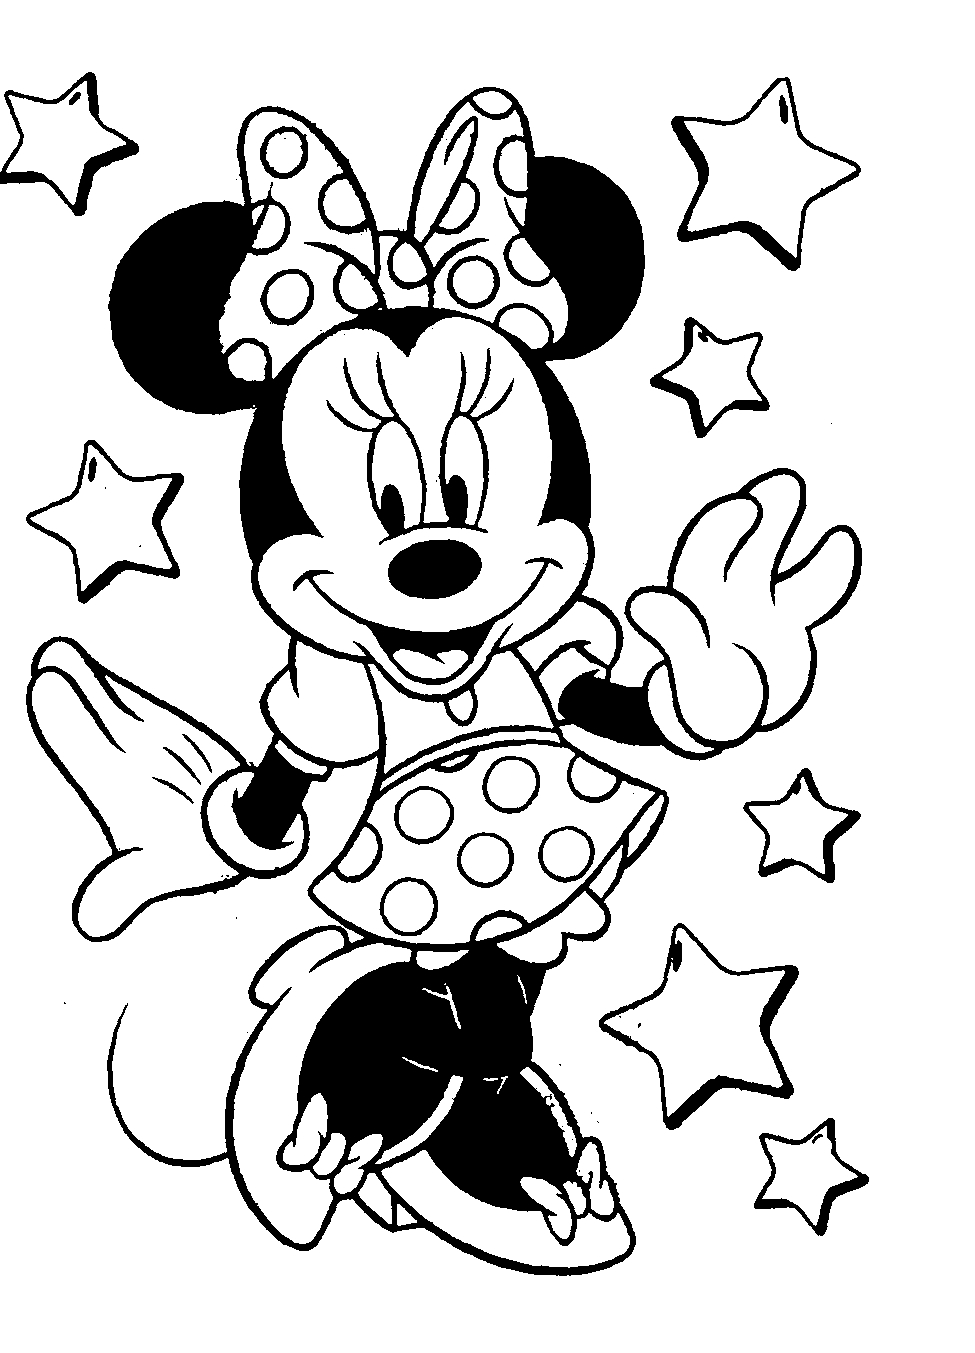 minnie mouse coloring pages - minnie mouse coloring pages to print